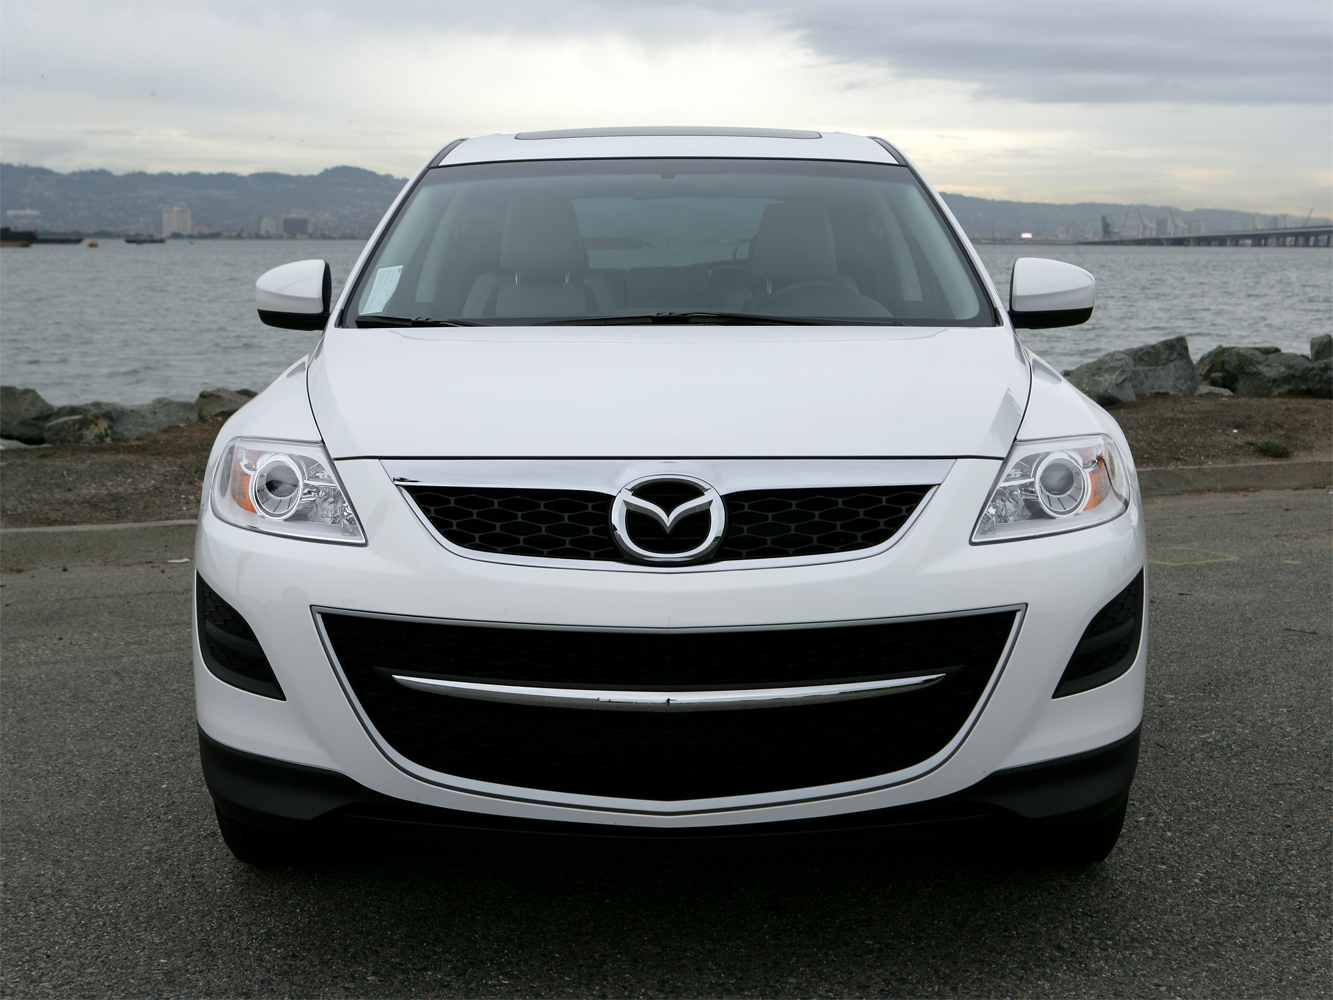 2010 mazda cx 9 touring review cnet. Black Bedroom Furniture Sets. Home Design Ideas